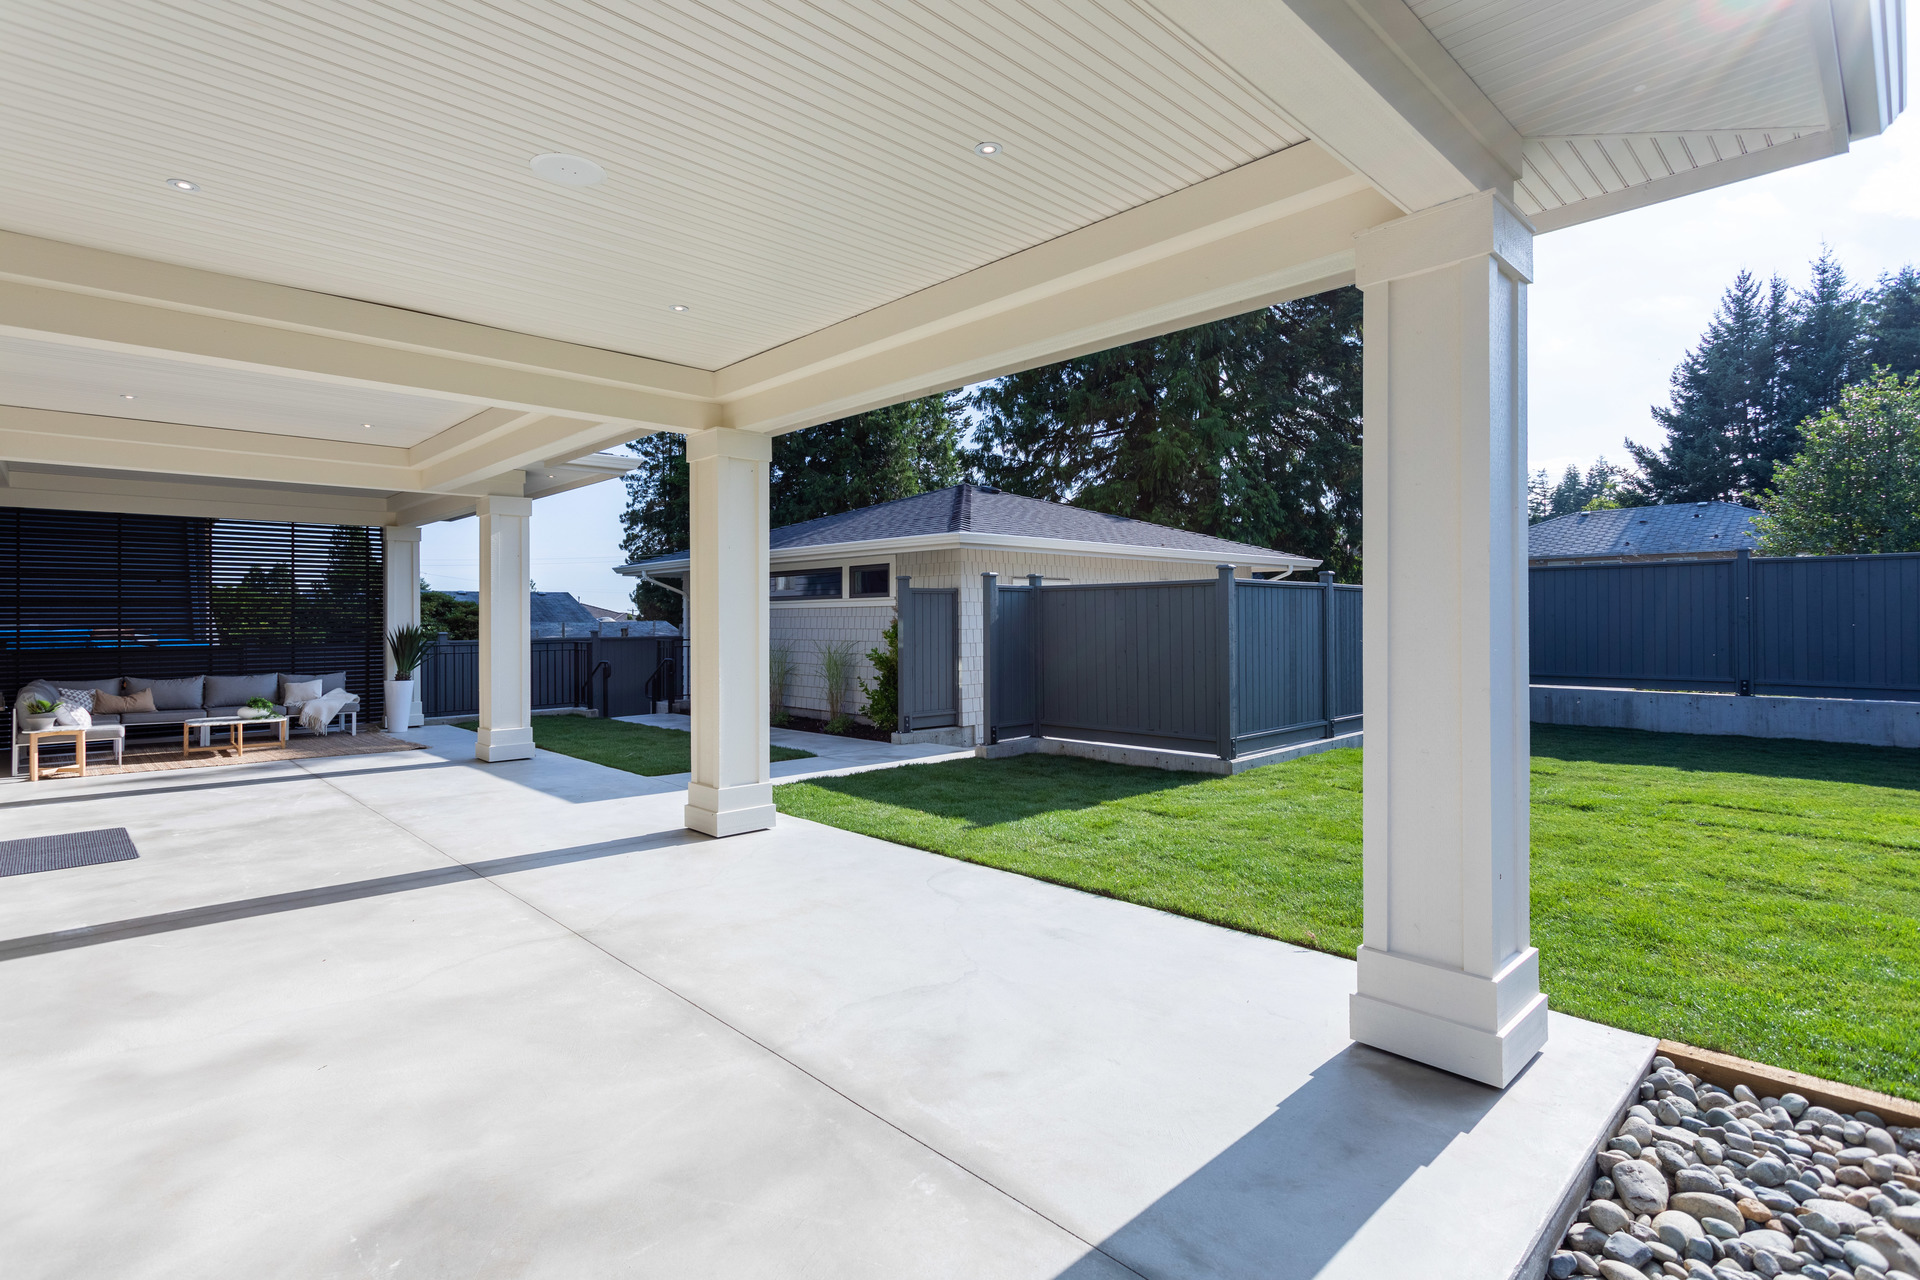 jh24 at 558 Berry Street, Central Coquitlam, Coquitlam